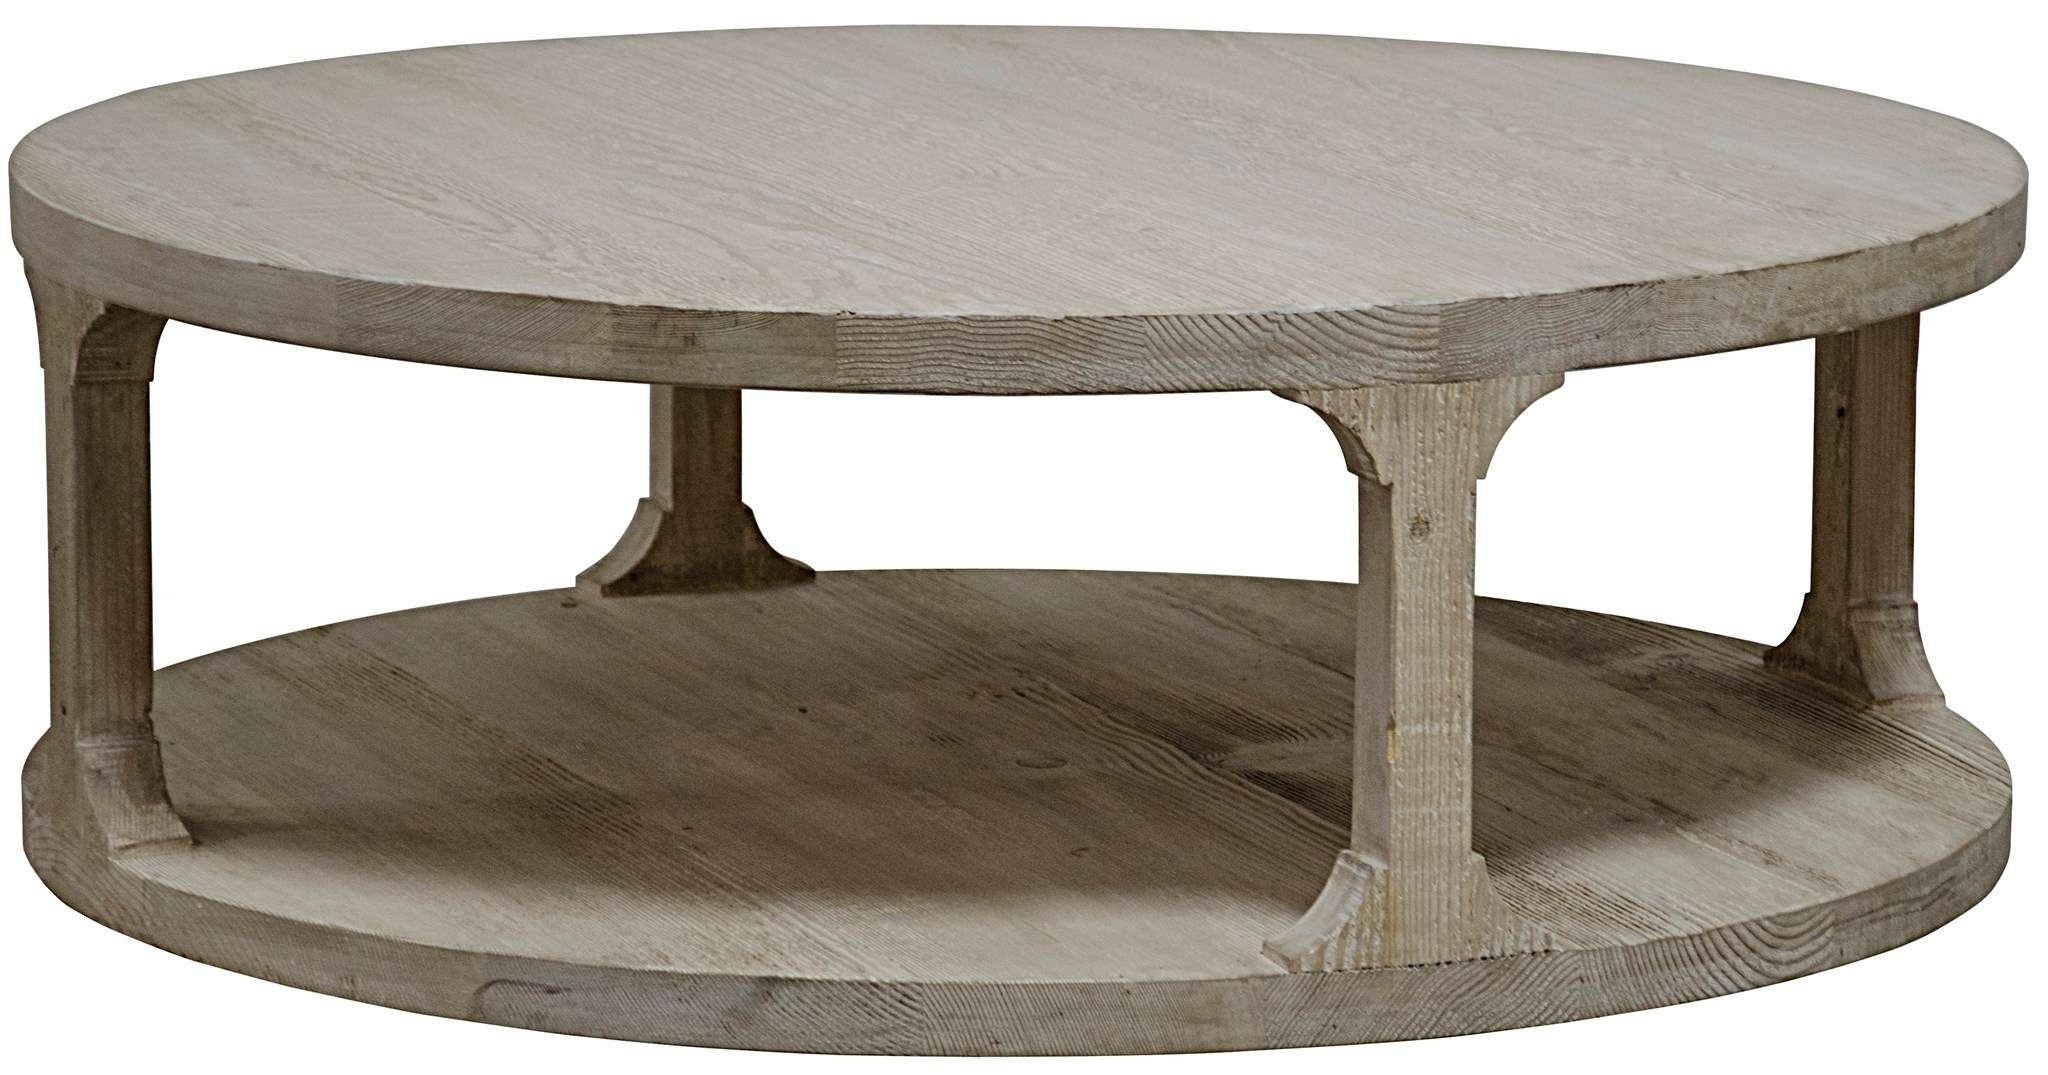 Famous Circular Coffee Tables Regarding Coffee Tables : Circular Coffee Table Round Wood Coffee Table (View 5 of 20)